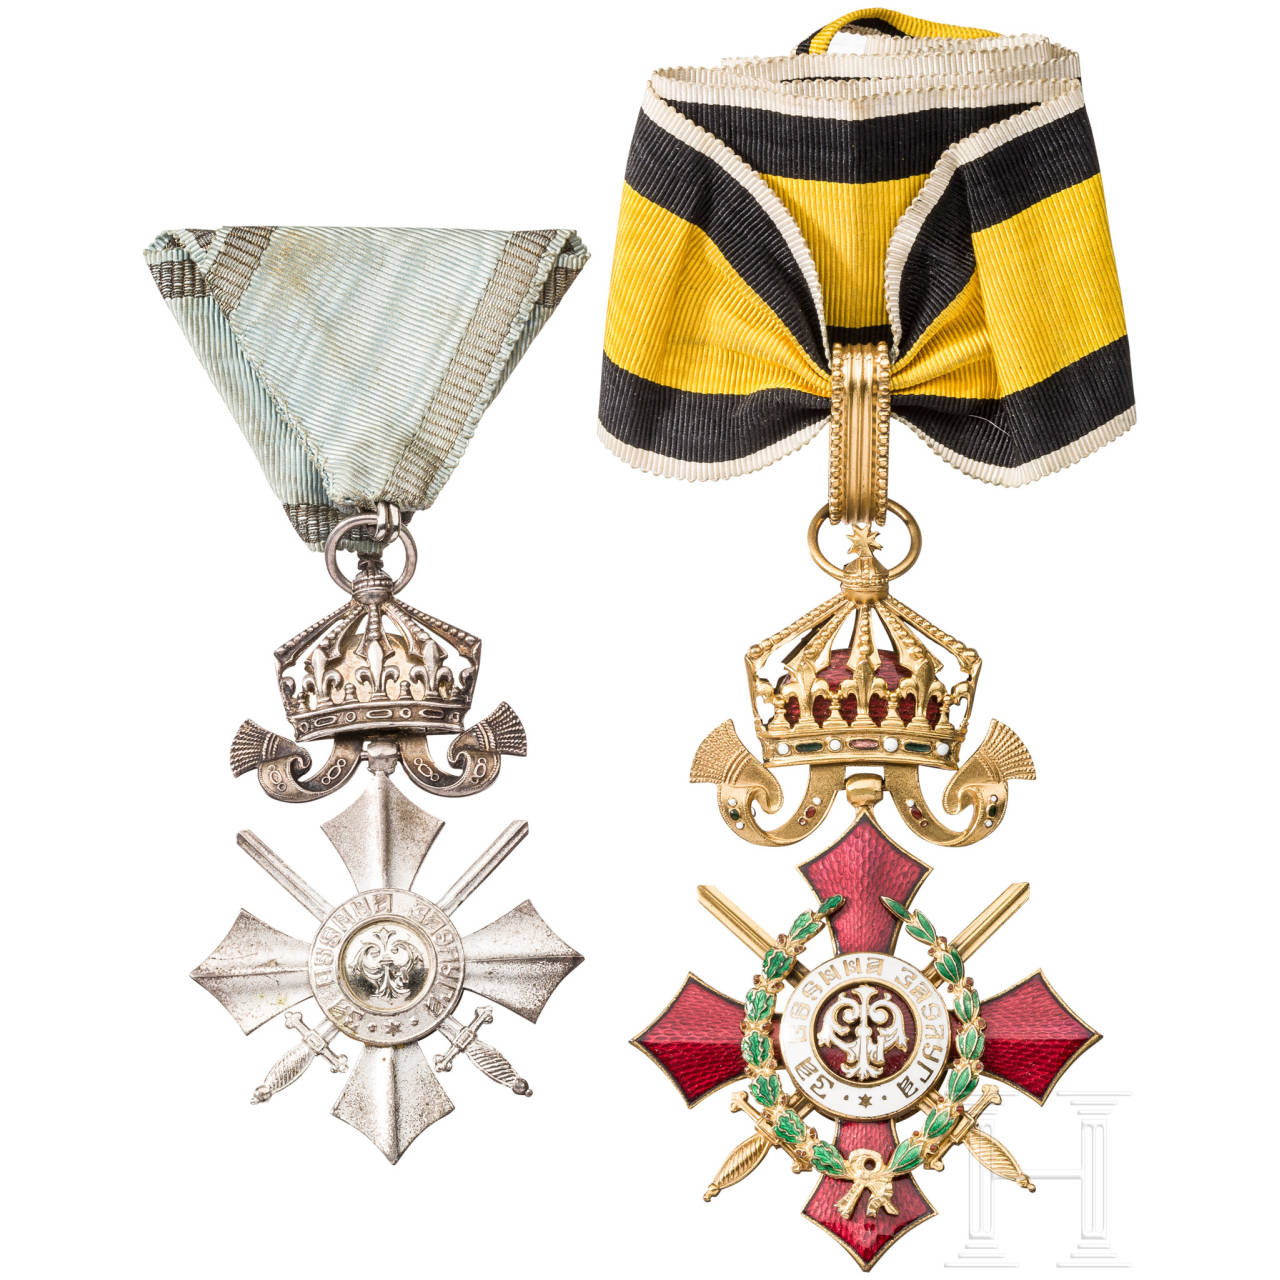 Military Merit Order 2nd class with war decoration, Bulgaria